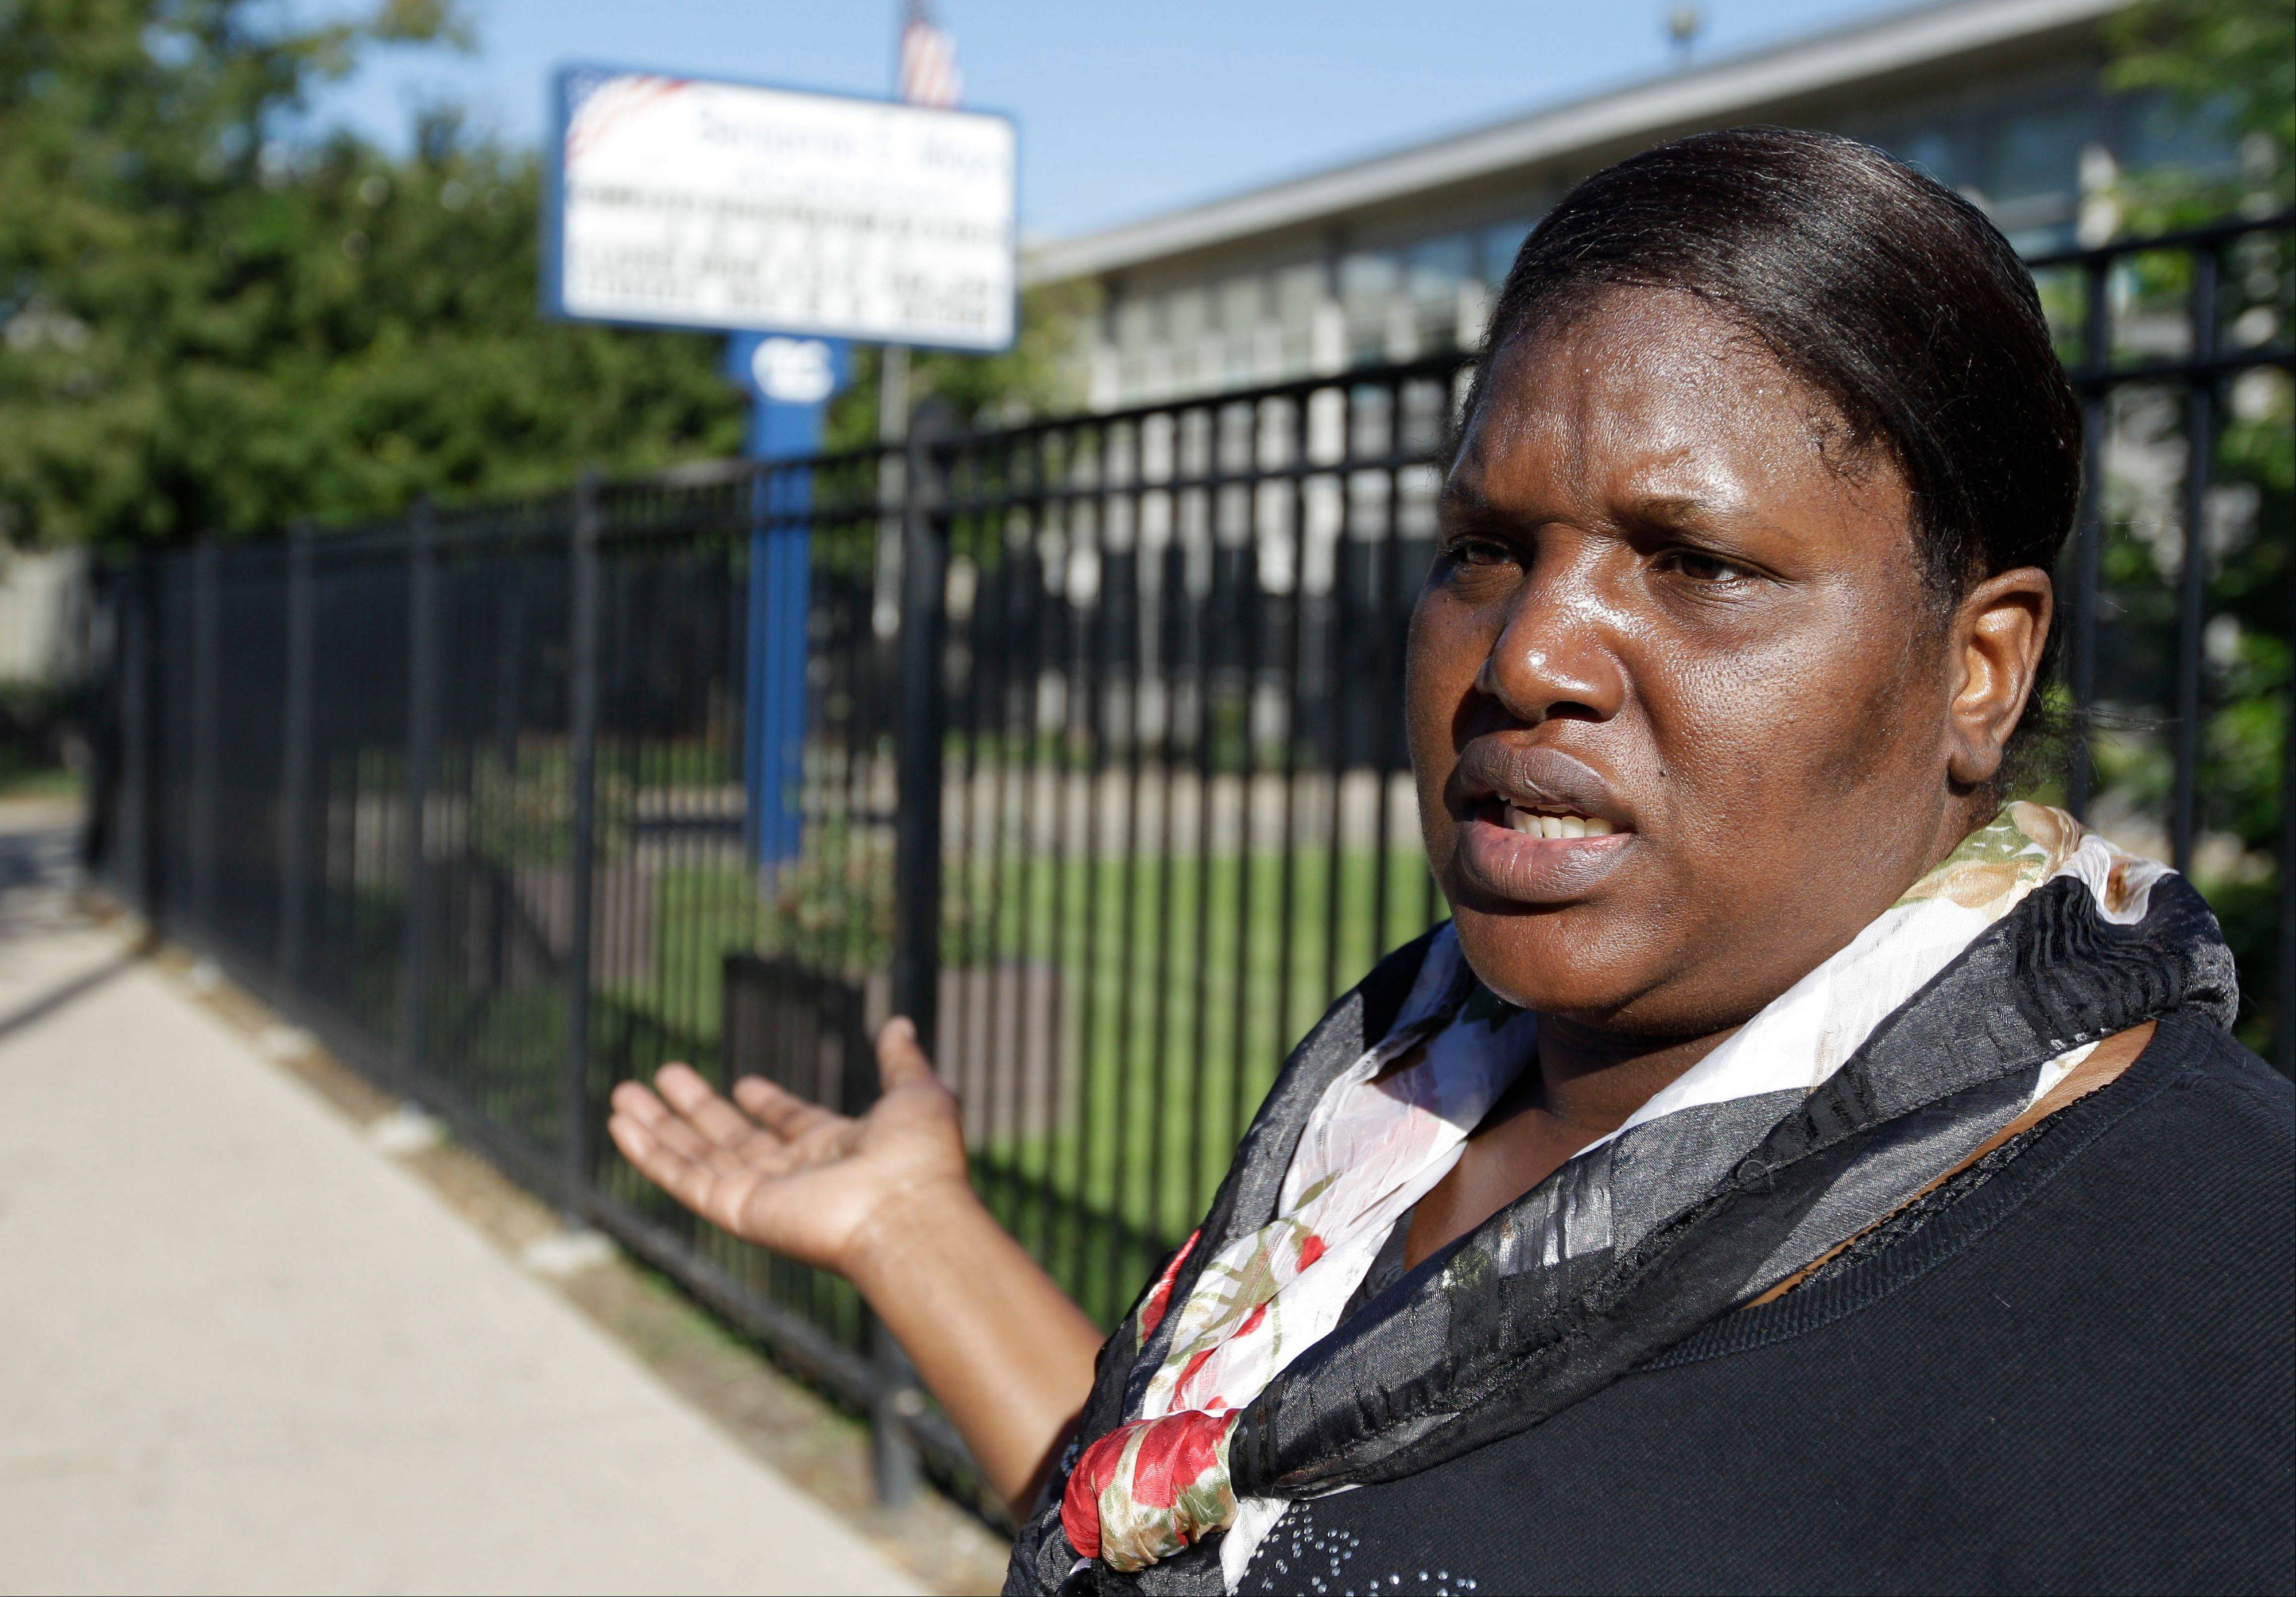 Rose Davis speaks outside Benjamin E. Mays Academy where she dropped off her two grandchildren for a half day of school supervision, during the first day of a teachers strike Monday in Chicago. Thousands